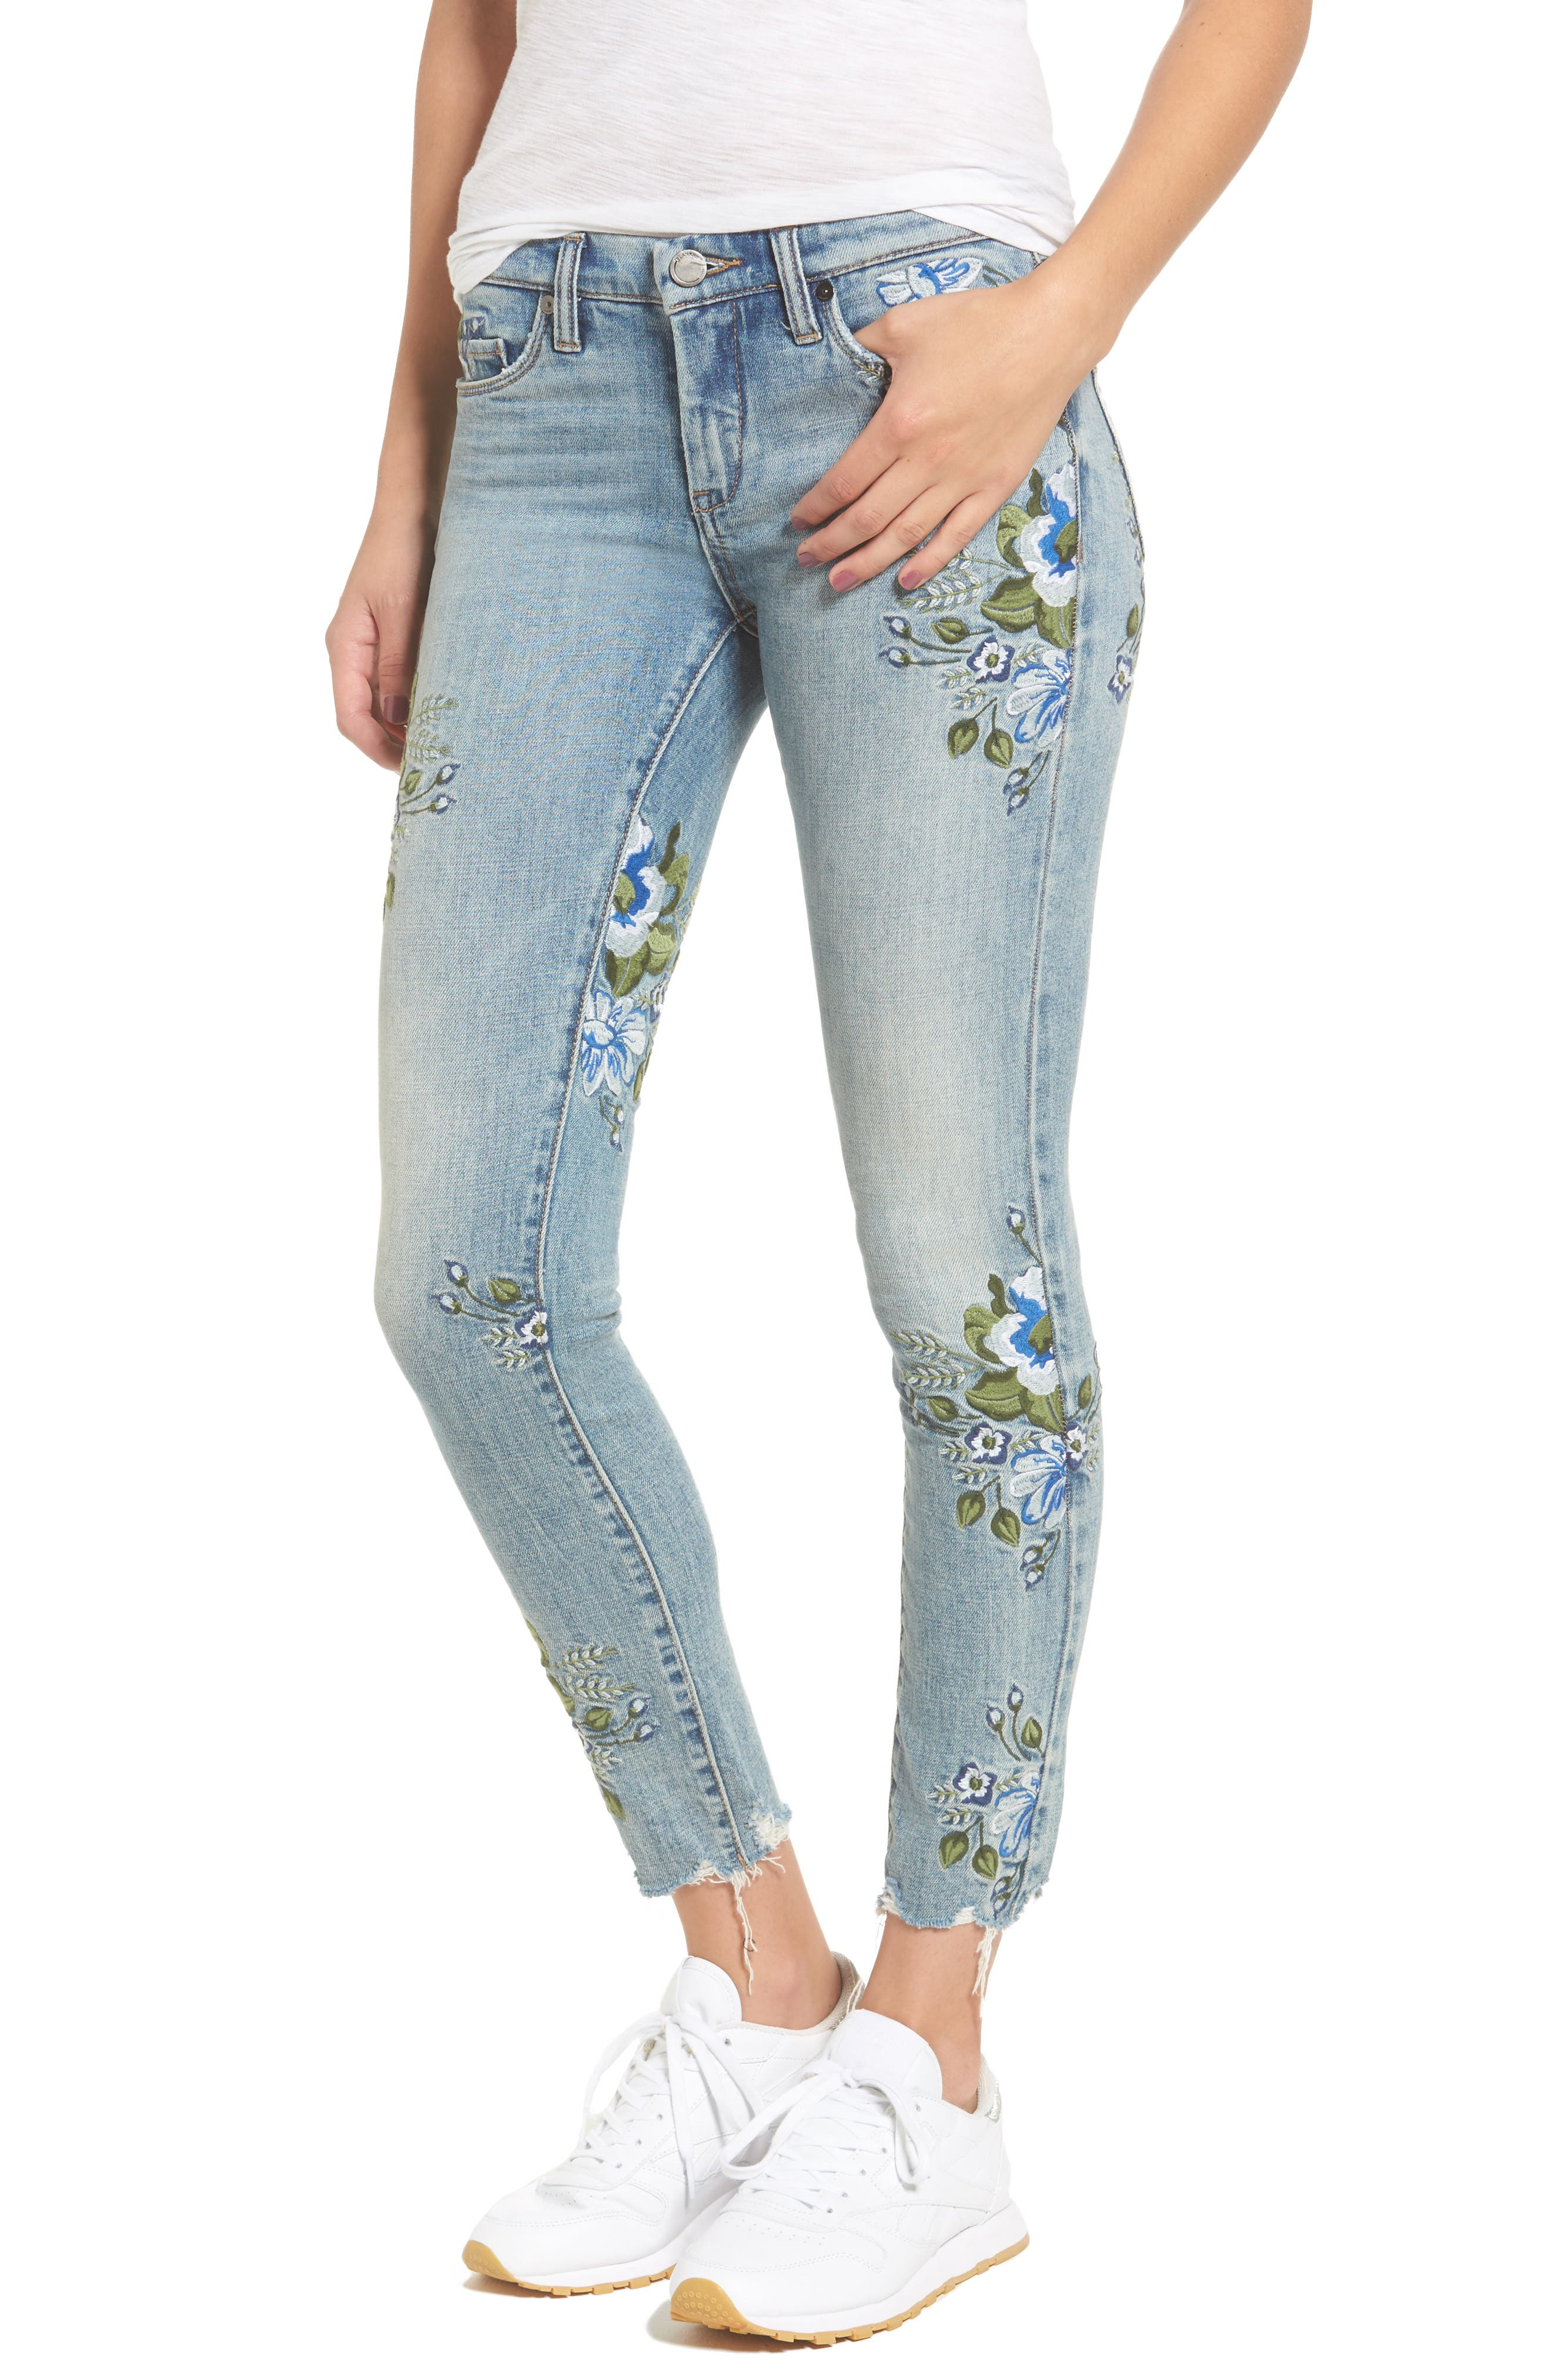 Alternate Image 1 Selected - BLANKNYC Floral Embroidered Skinny Jeans (Back to Nature)